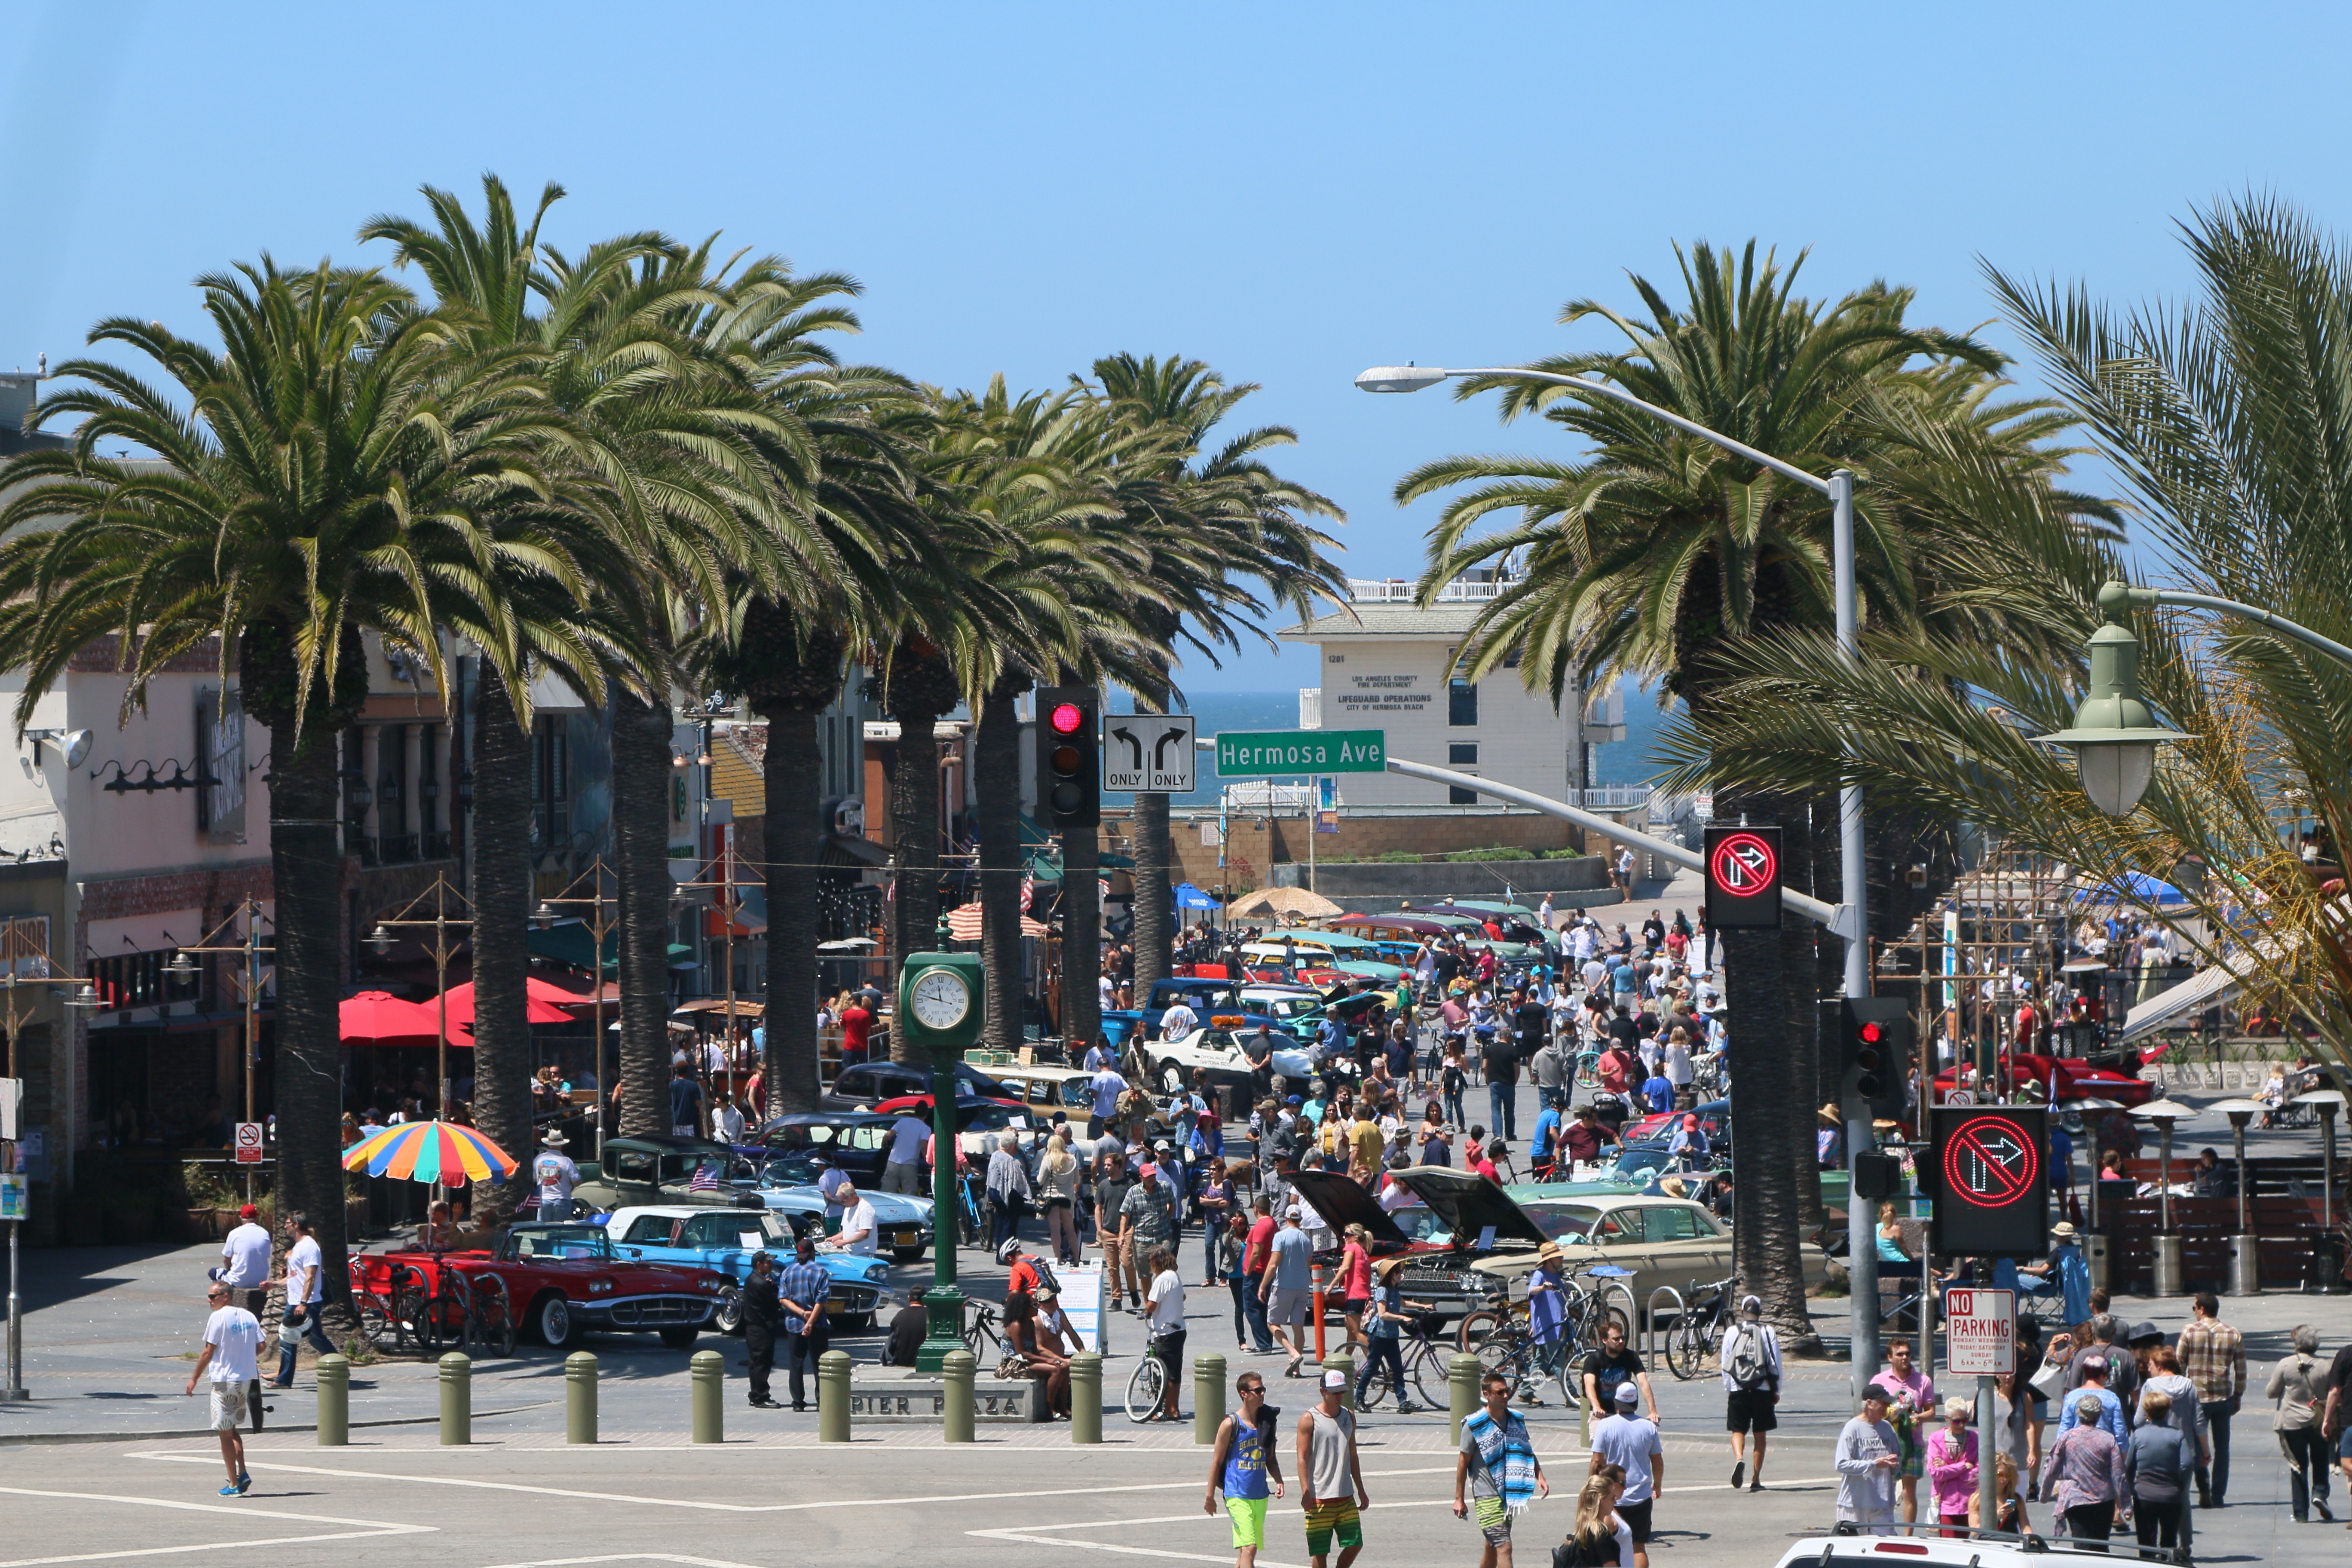 Patrons Stroll Along A Packed Pier Plaza New Report Attempts To Determine Whether Businesses